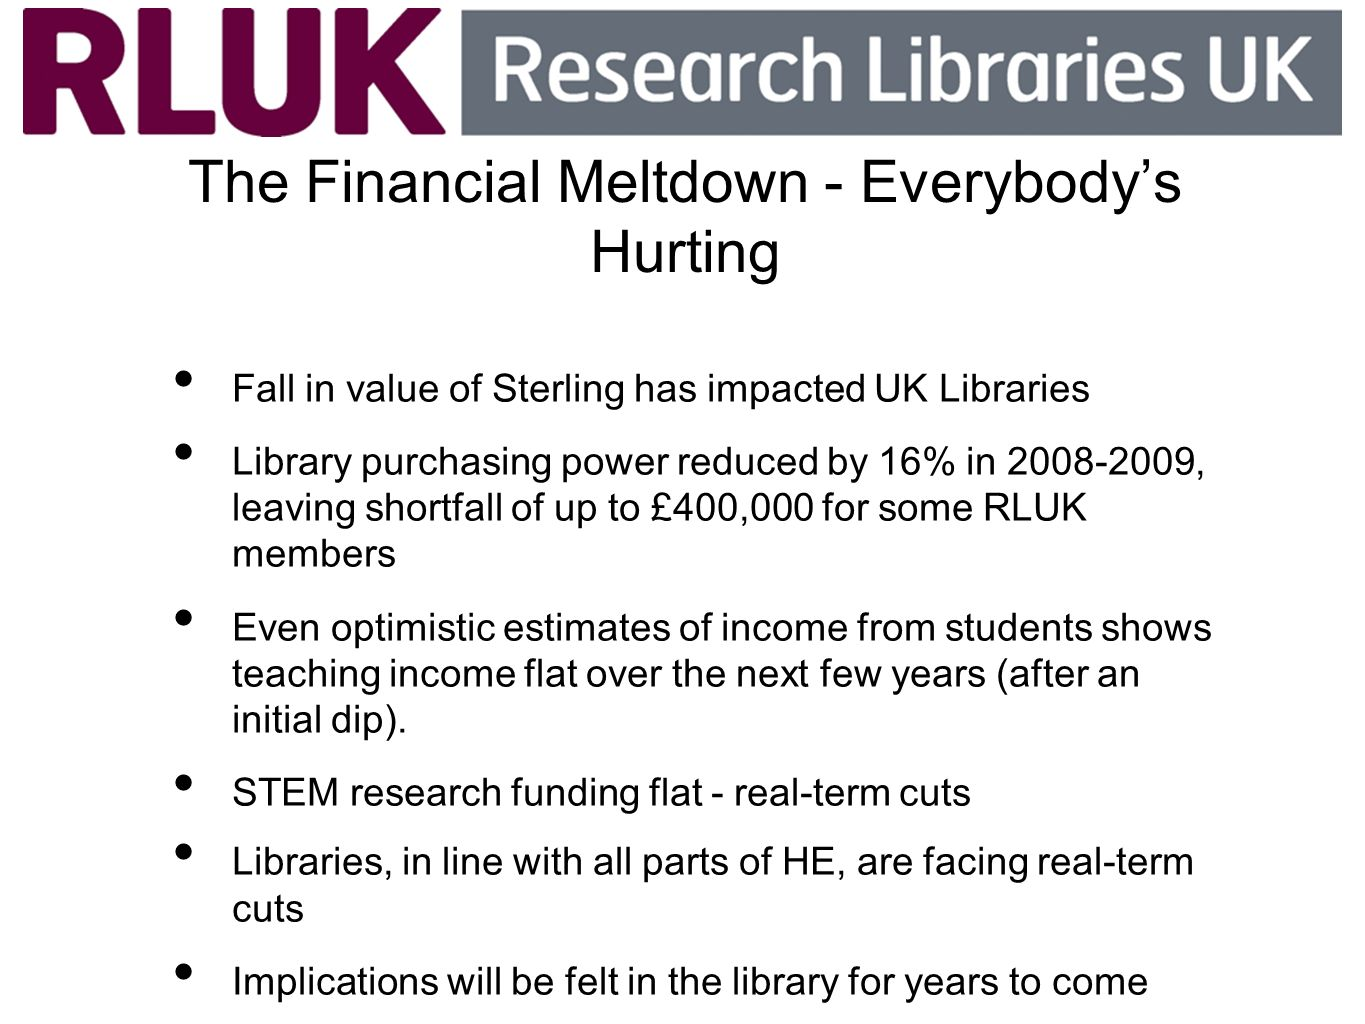 Everybodys Hurting Not just the UK: Association of Research Libraries (ARL) survey of members in 2009 showed 40% had already experienced cuts 82% expected cuts for 2009-2010 50% expected reductions of 5-10%, but 5% expected budget cuts of greater than 10% http://www.arl.org/sparc/bm~doc/ala09lowry.pdf